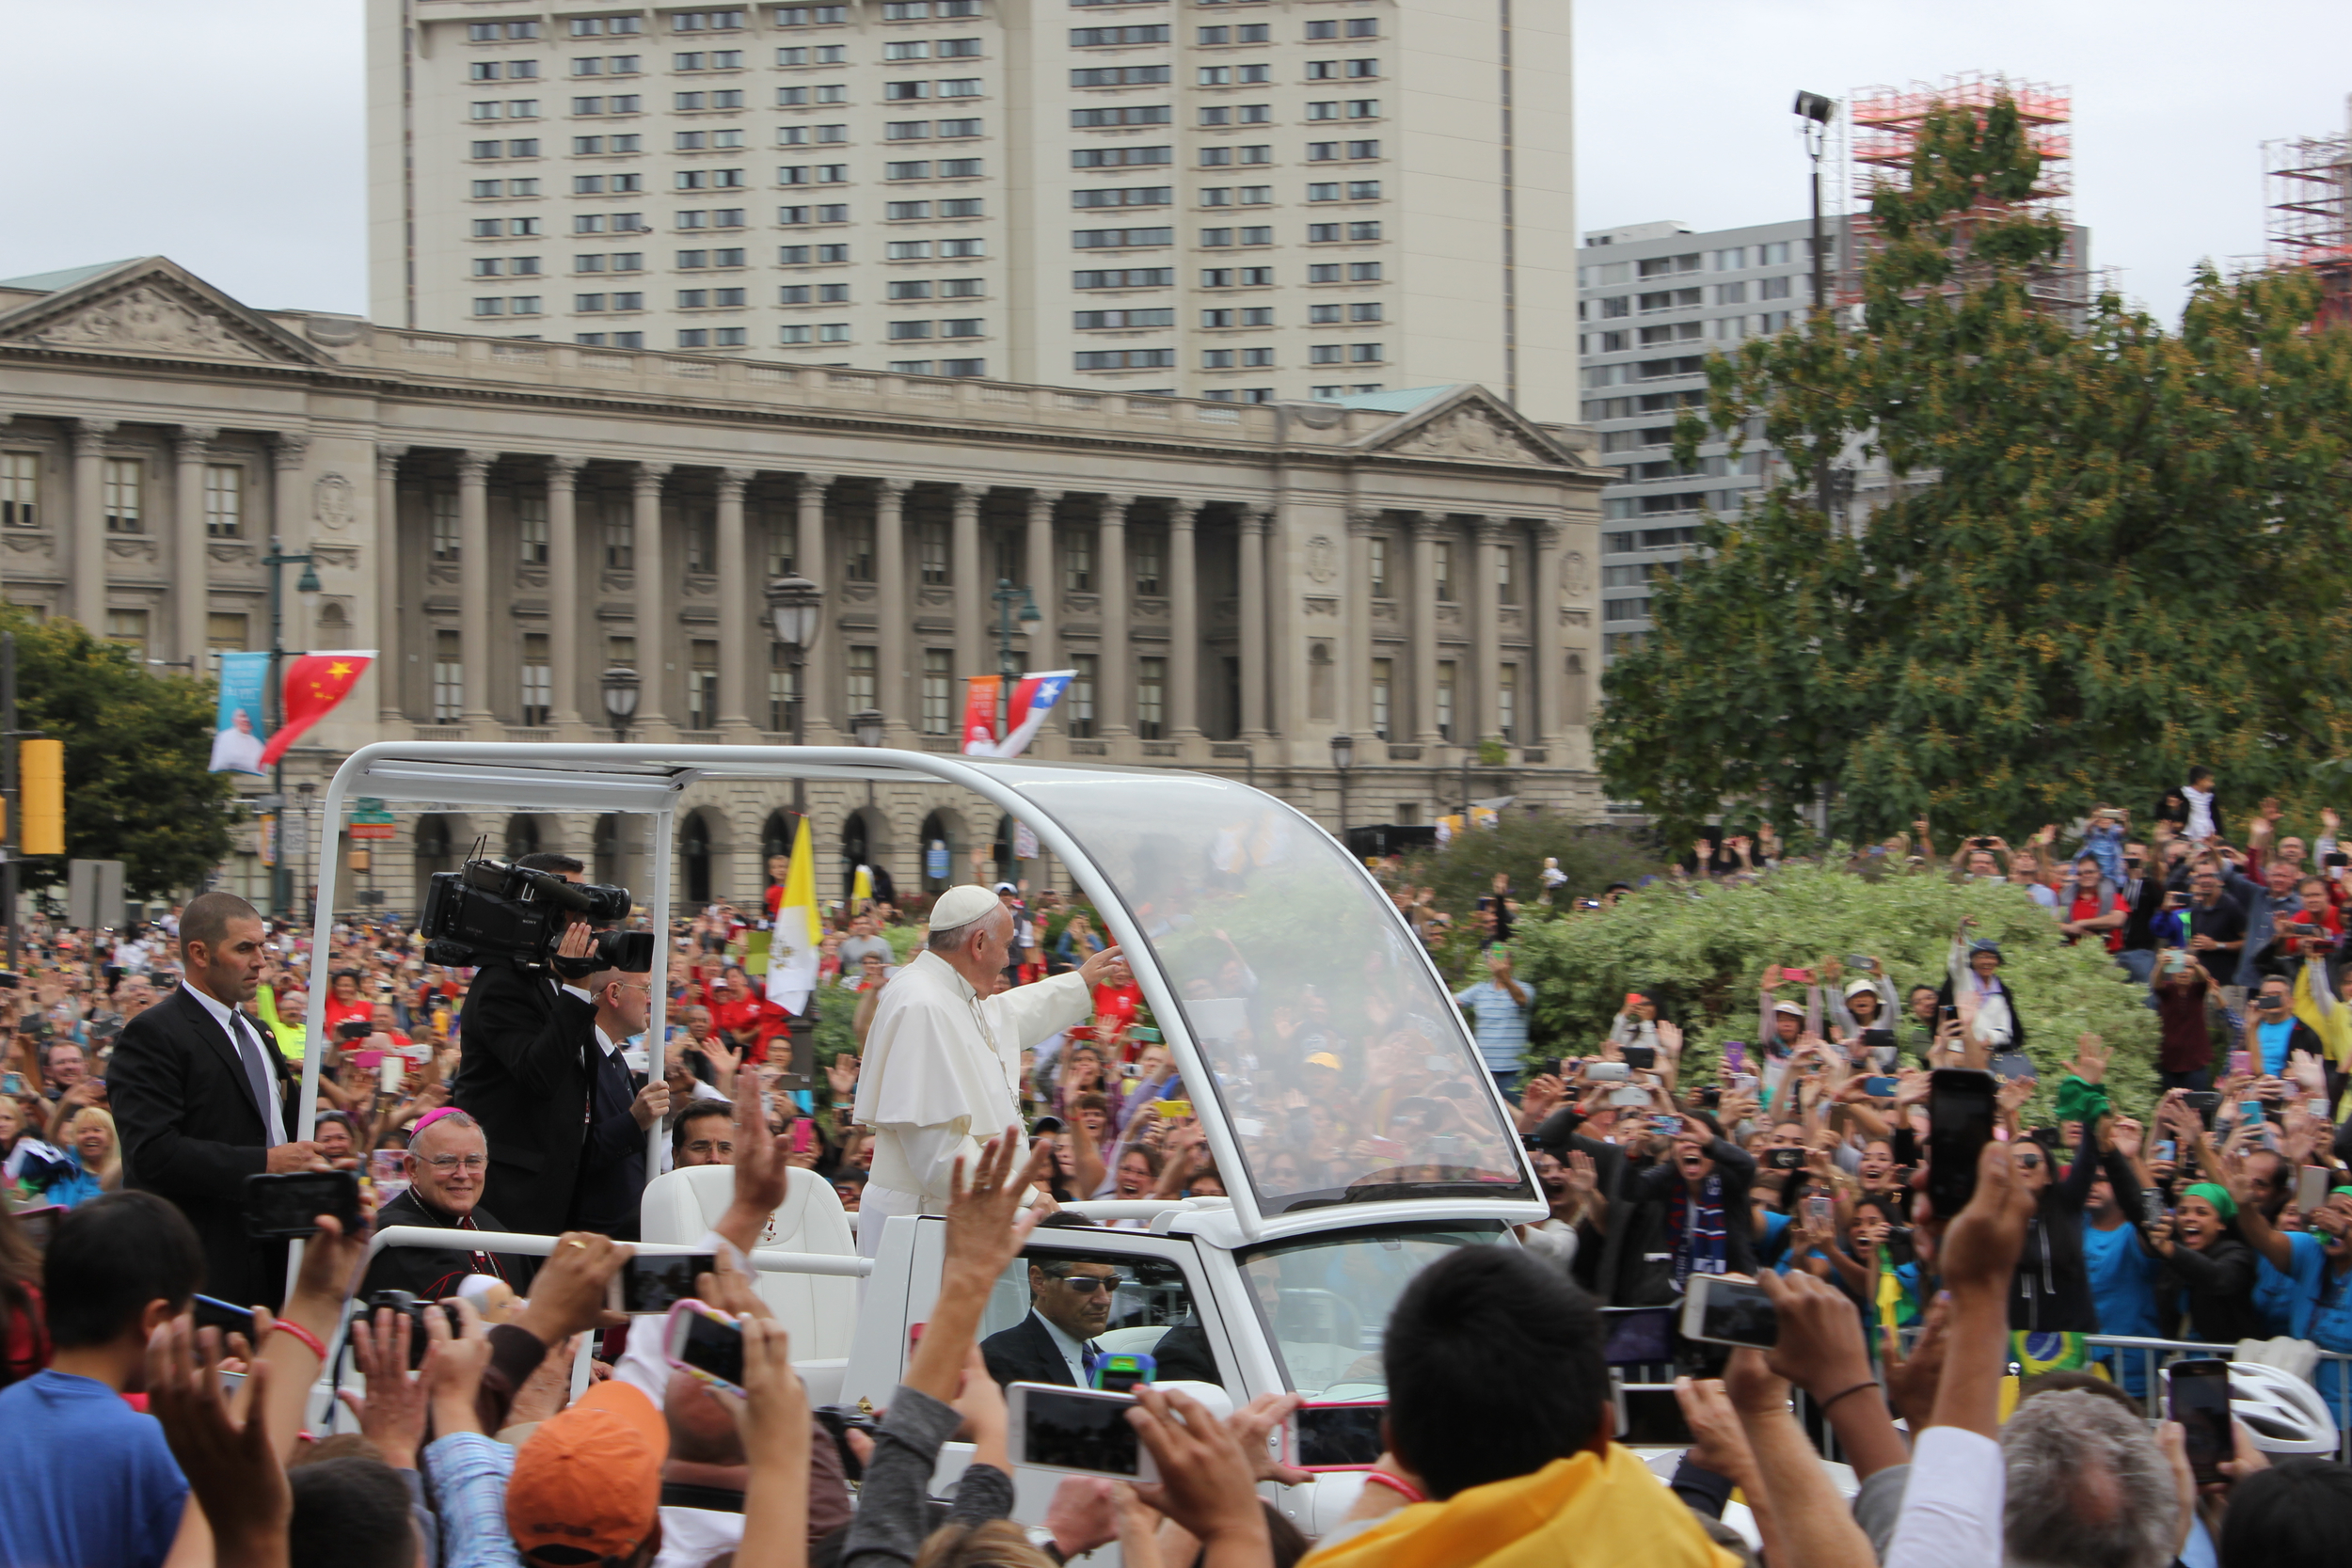 Our view on Sunday as Pope Francis drove by on his way to say mass.